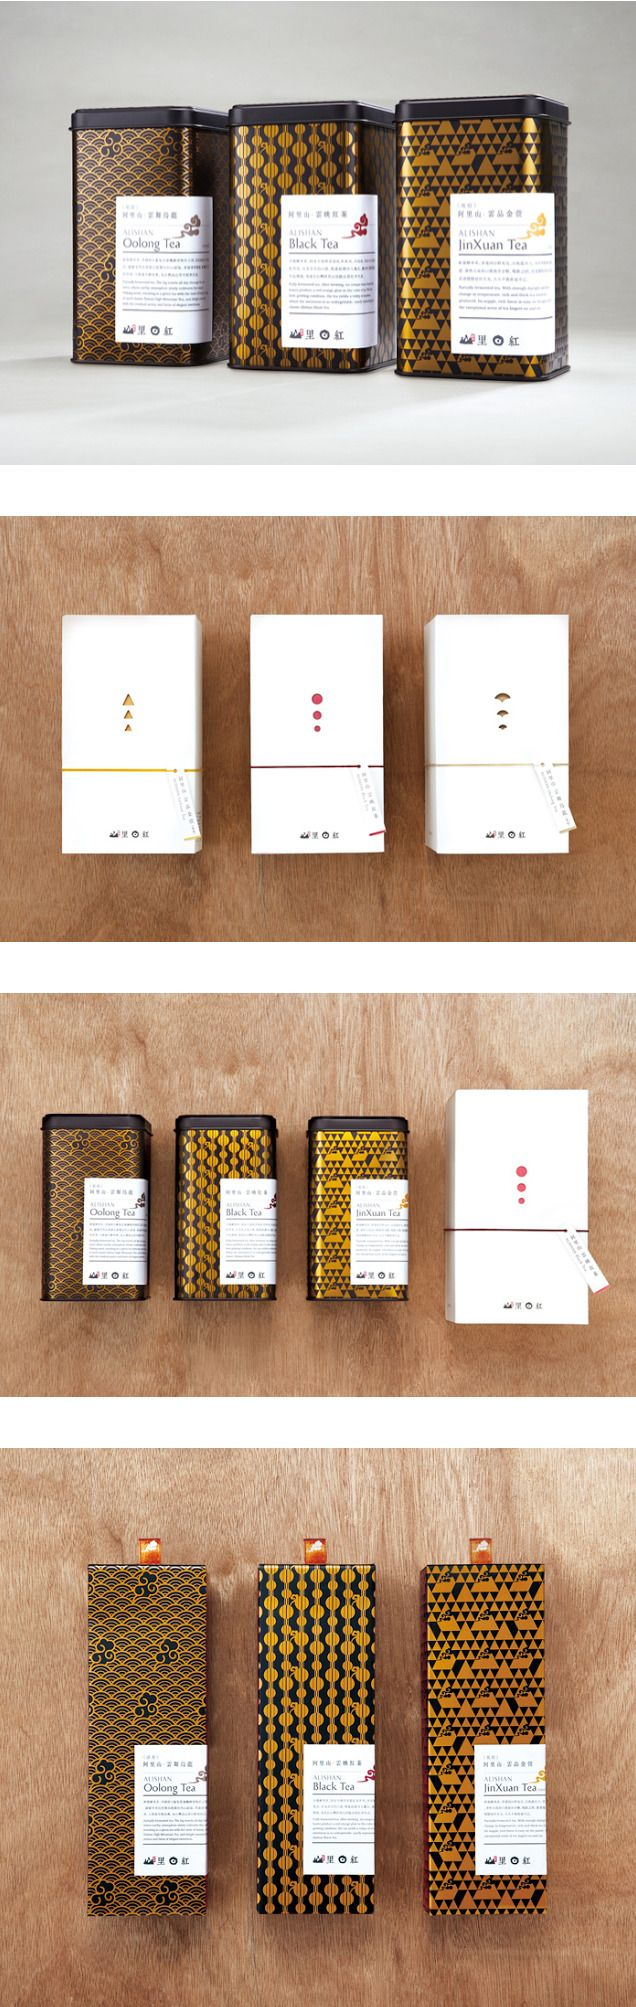 Packaging / Tea packagings